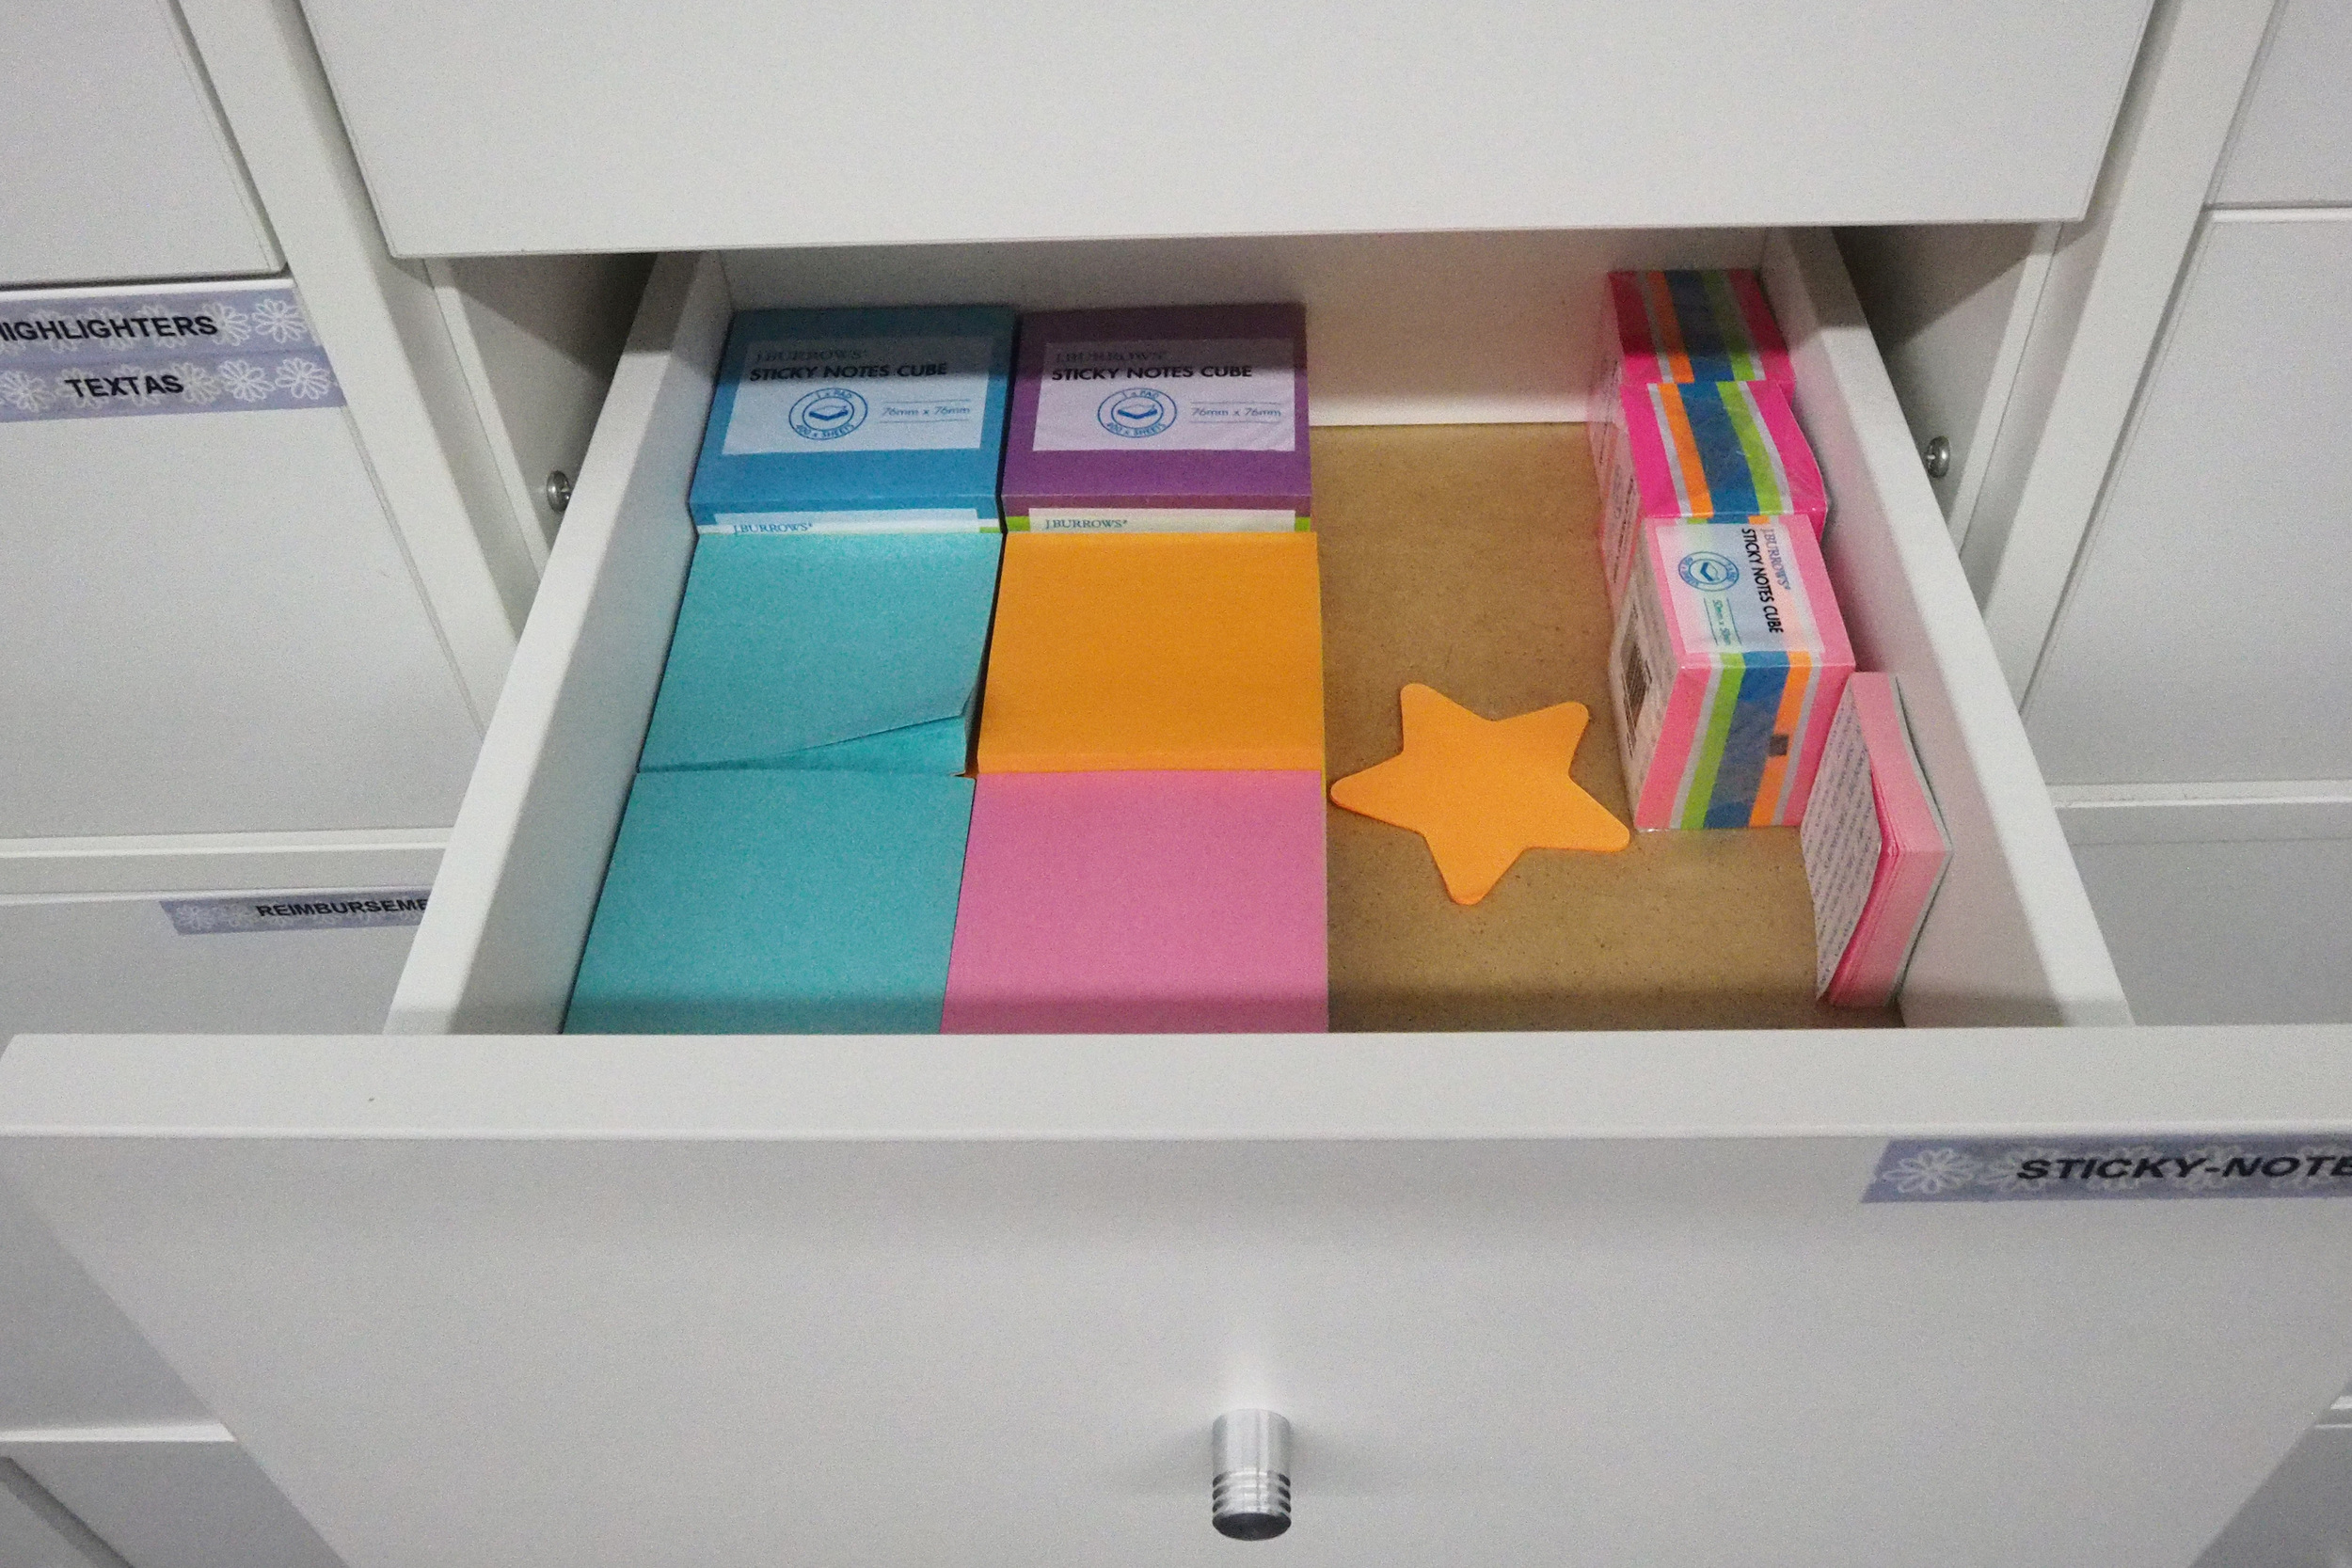 office supplies organised